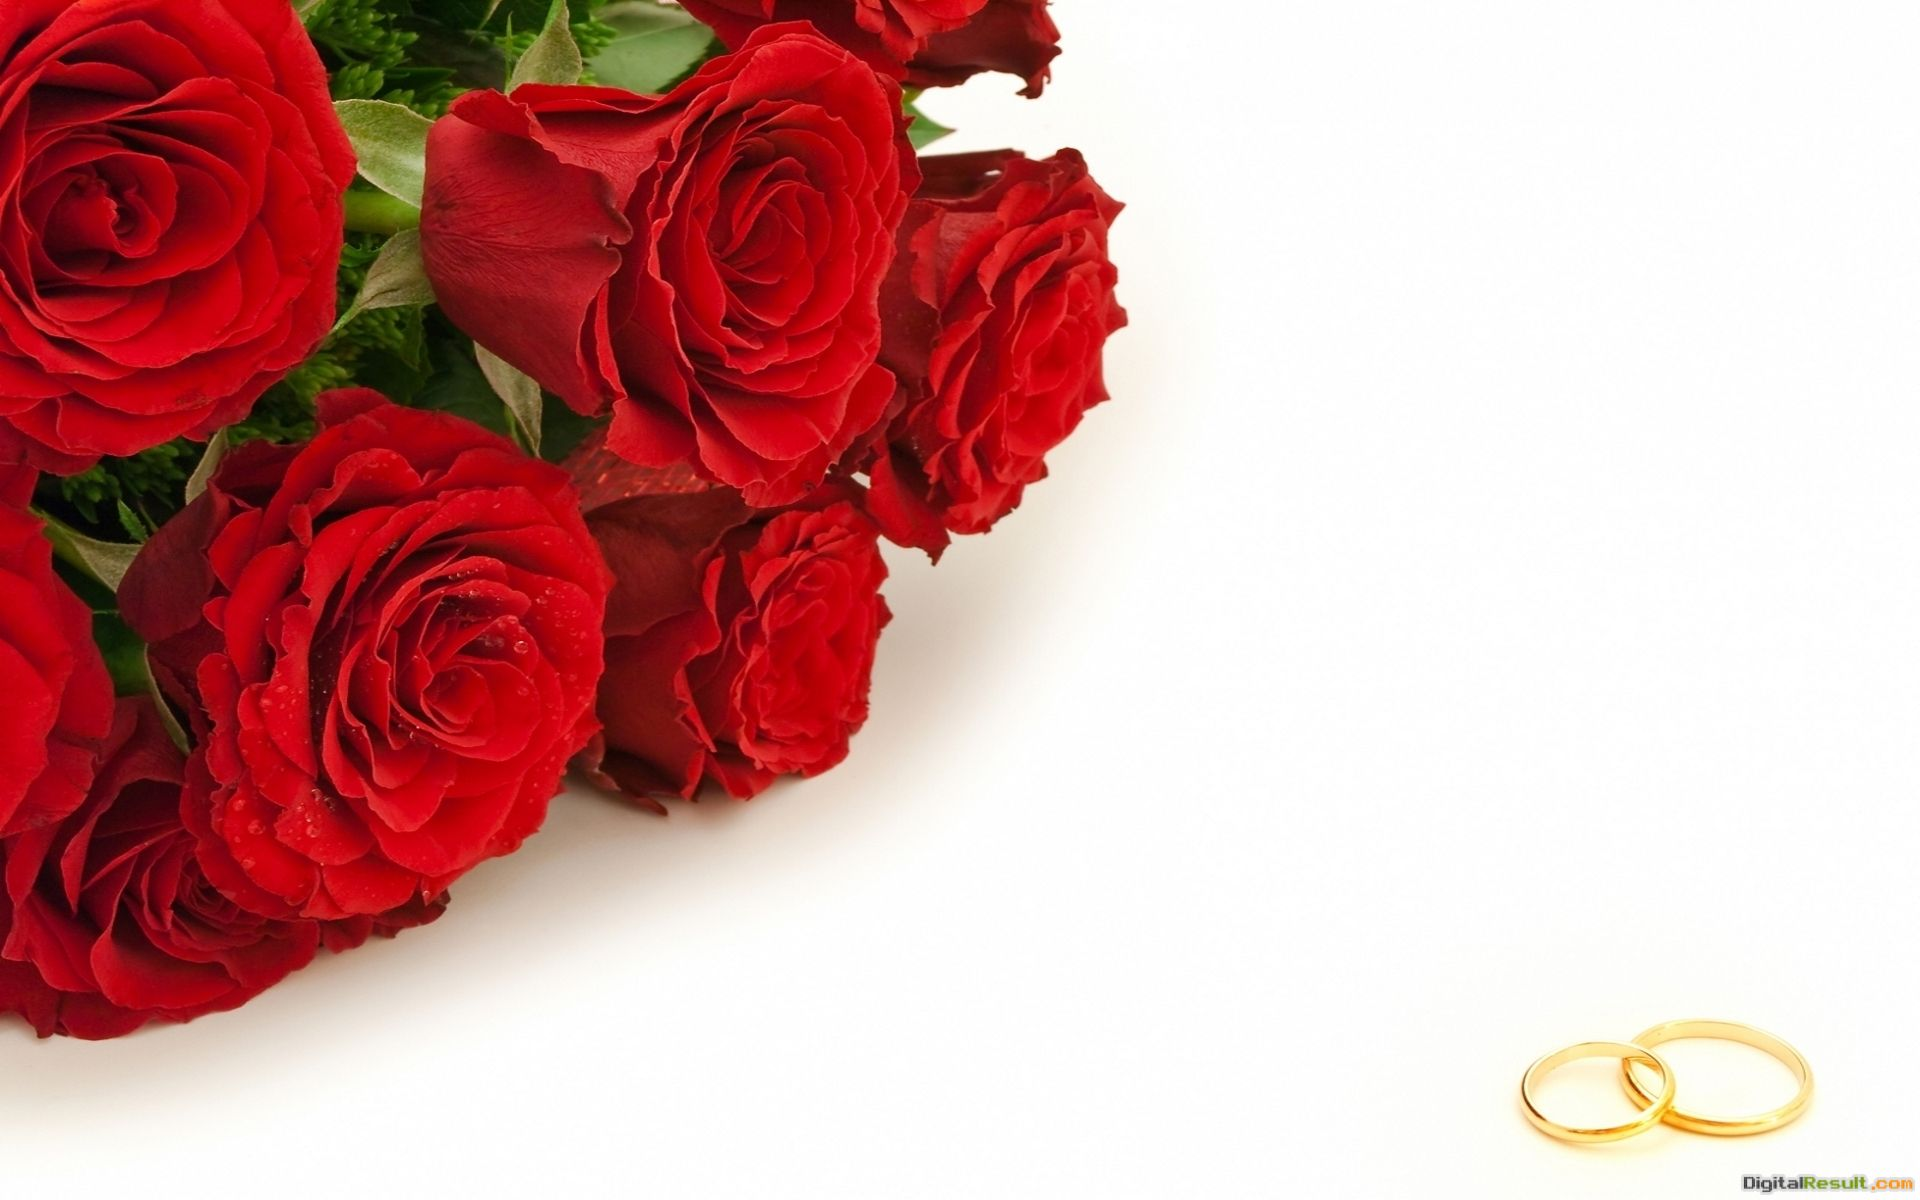 Red roses and golden wedding rings wallpapers and imageswallpapers 439